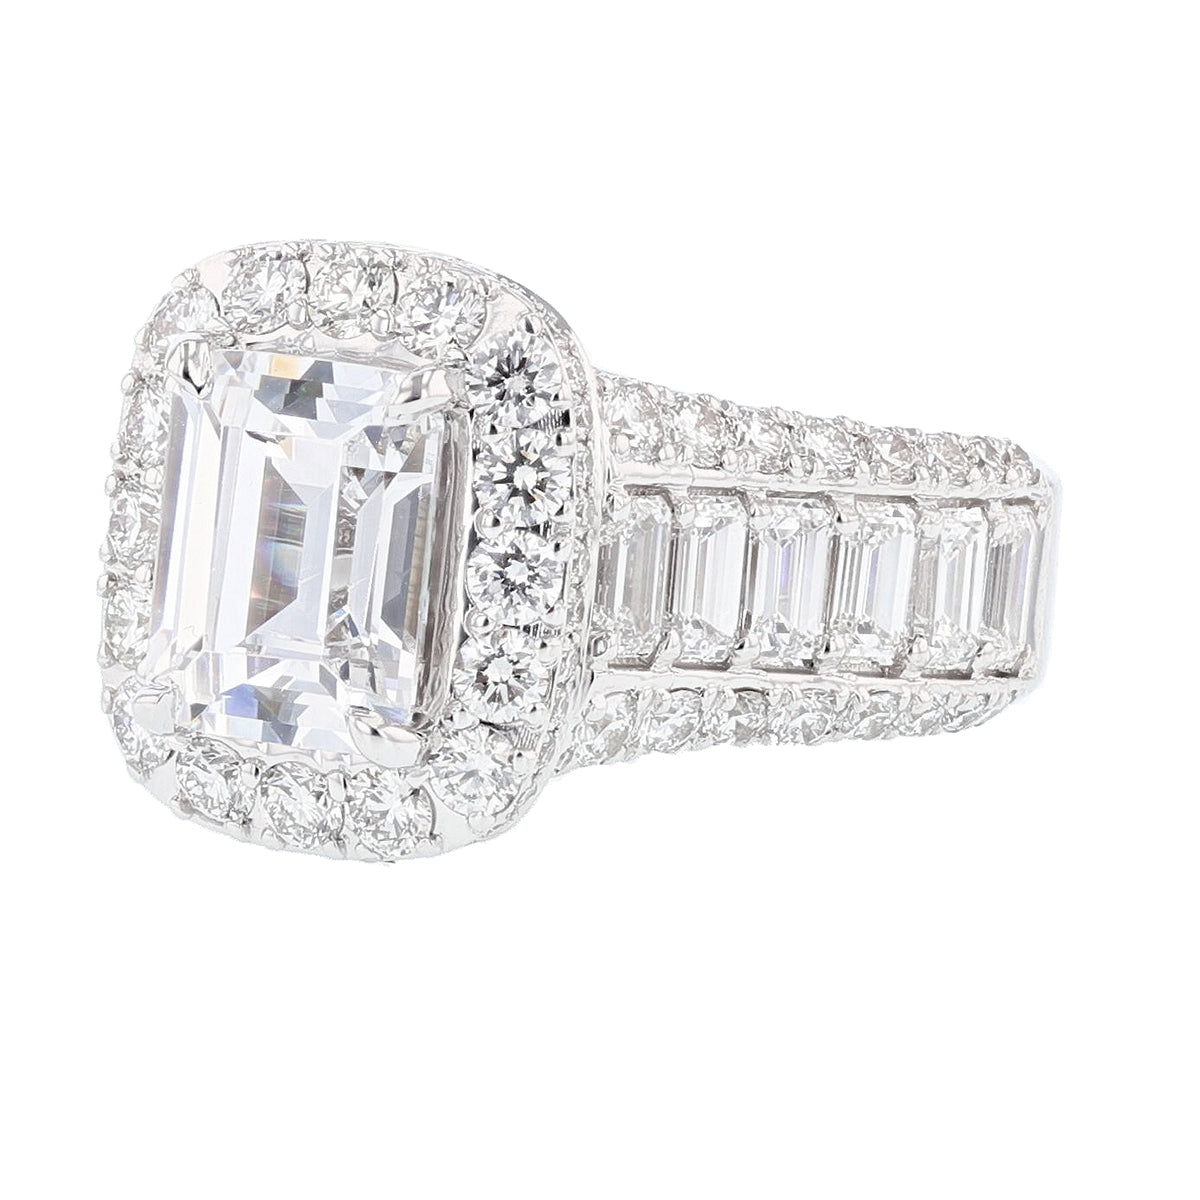 18K White Gold Emerald Cut Diamond Engagement Ring - Nazarelle